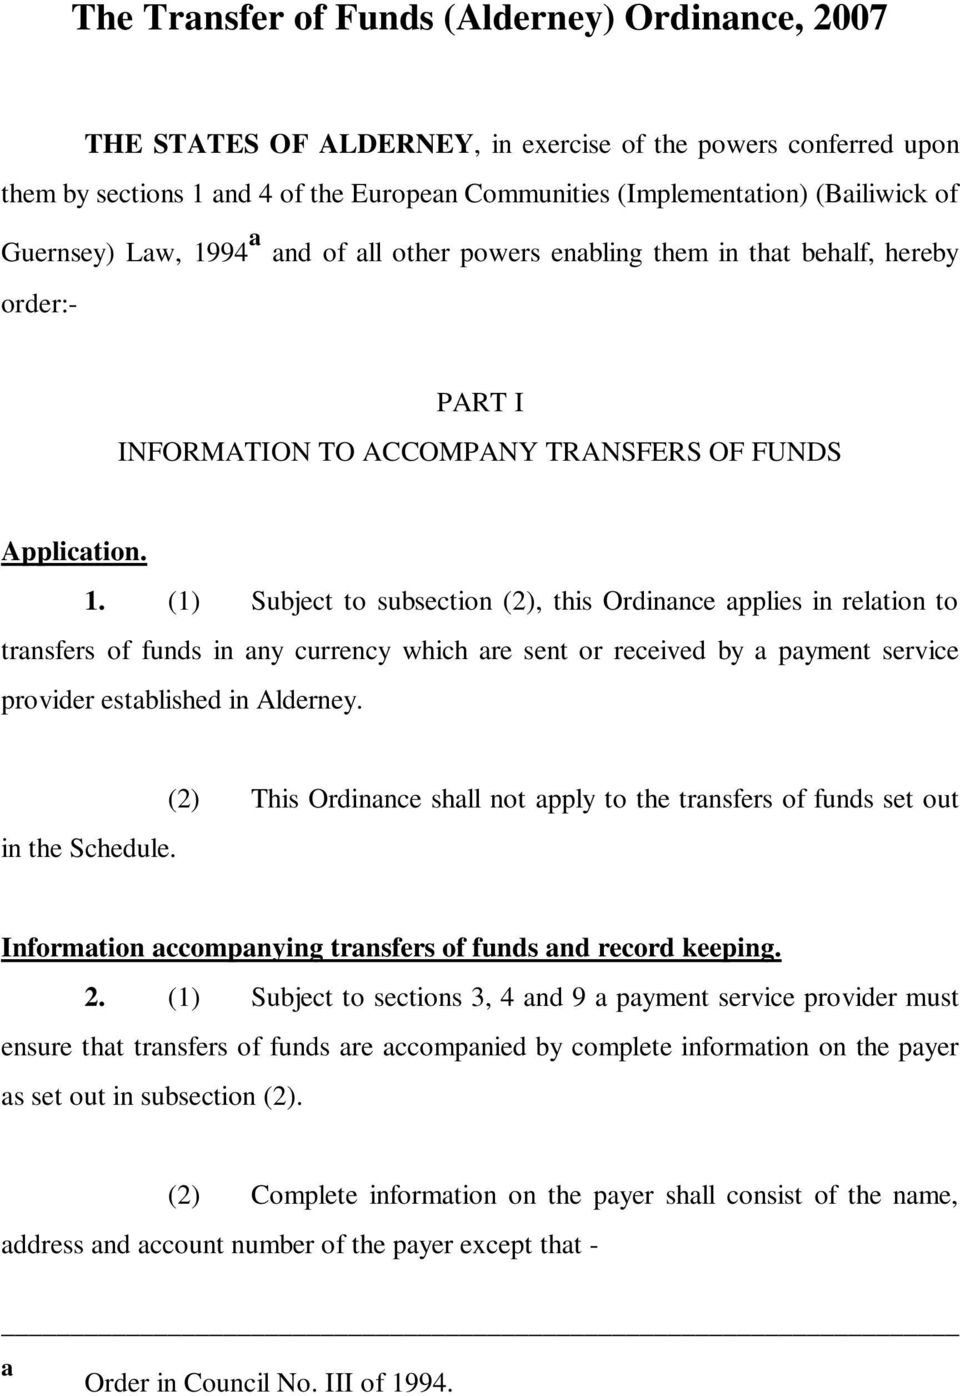 94 a and of all other powers enabling them in that behalf, hereby order:- PART I INFORMATION TO ACCOMPANY TRANSFERS OF FUNDS Application. 1.